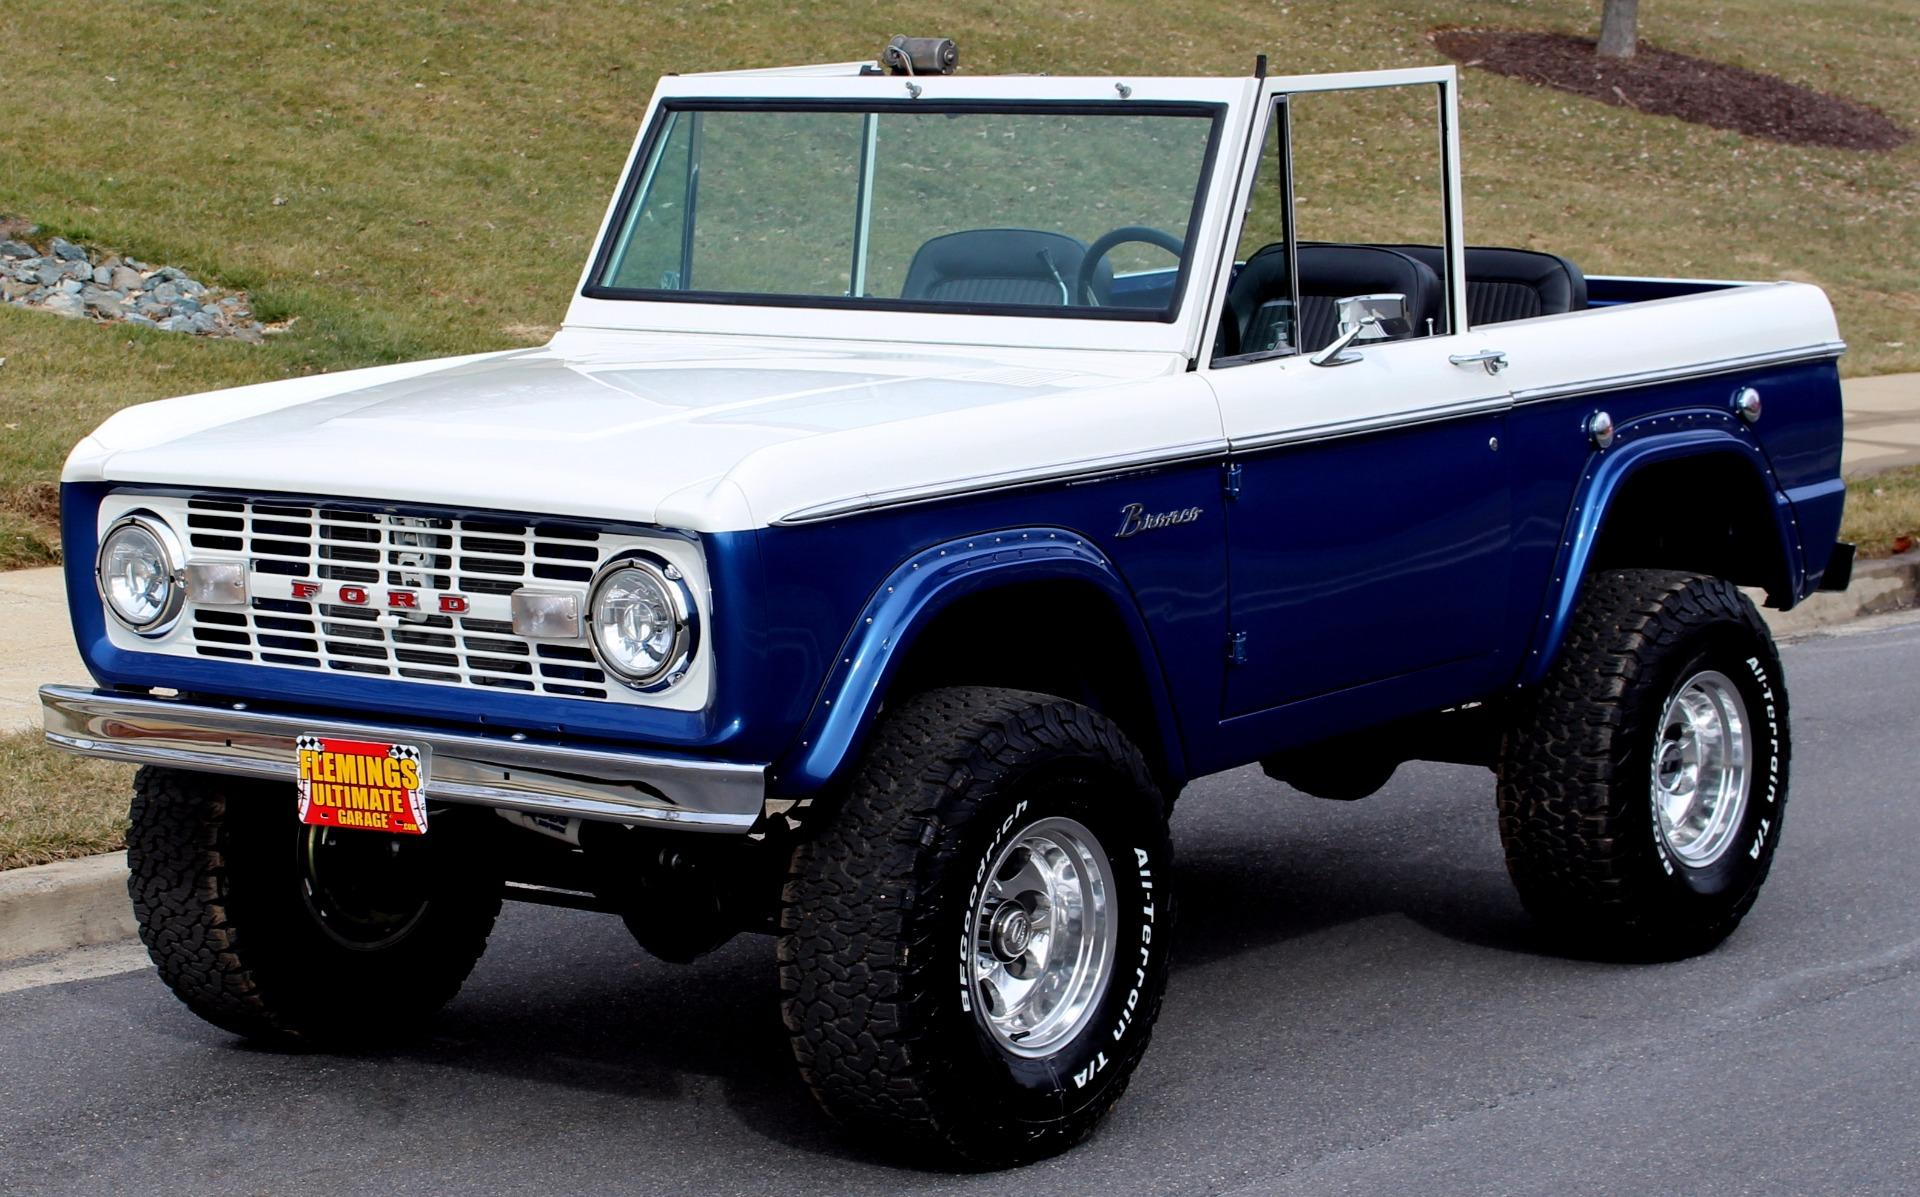 1975 Ford Bronco Pro Touring 4x4 With Less Than 100 Test